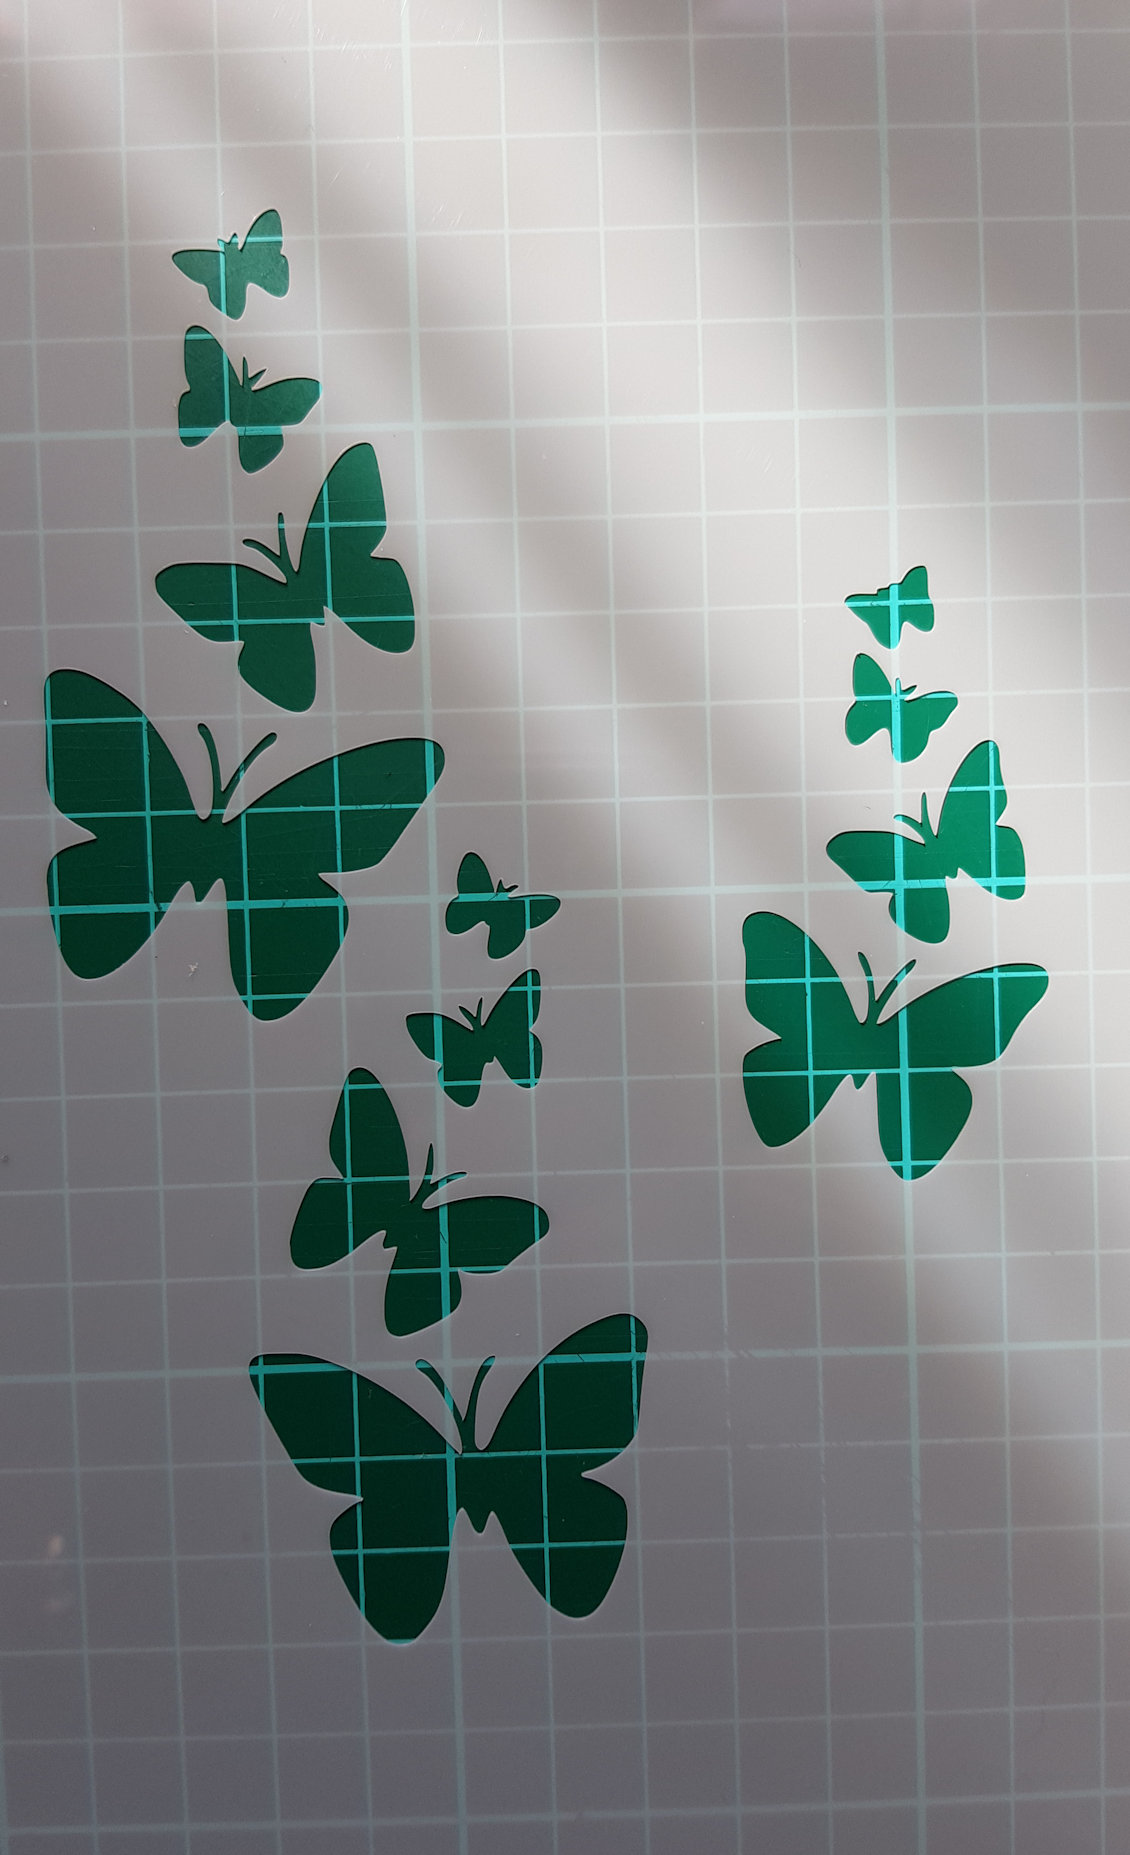 Butterflies stencil cake decorating